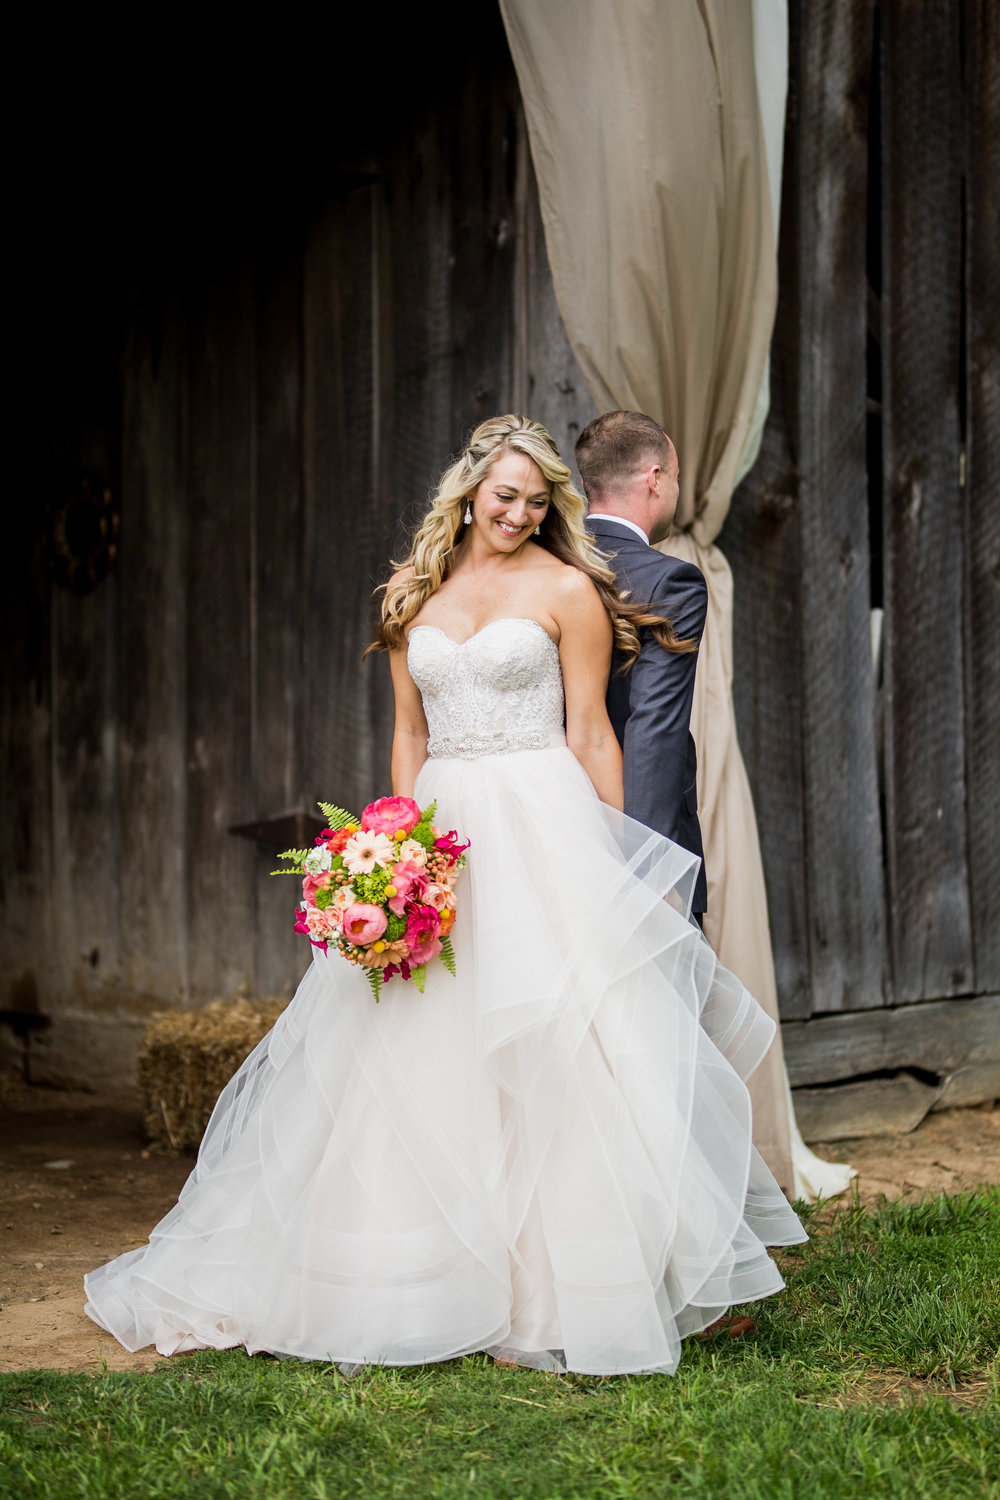 Nashville Wedding Photographers Drakewood Farm-251.jpg